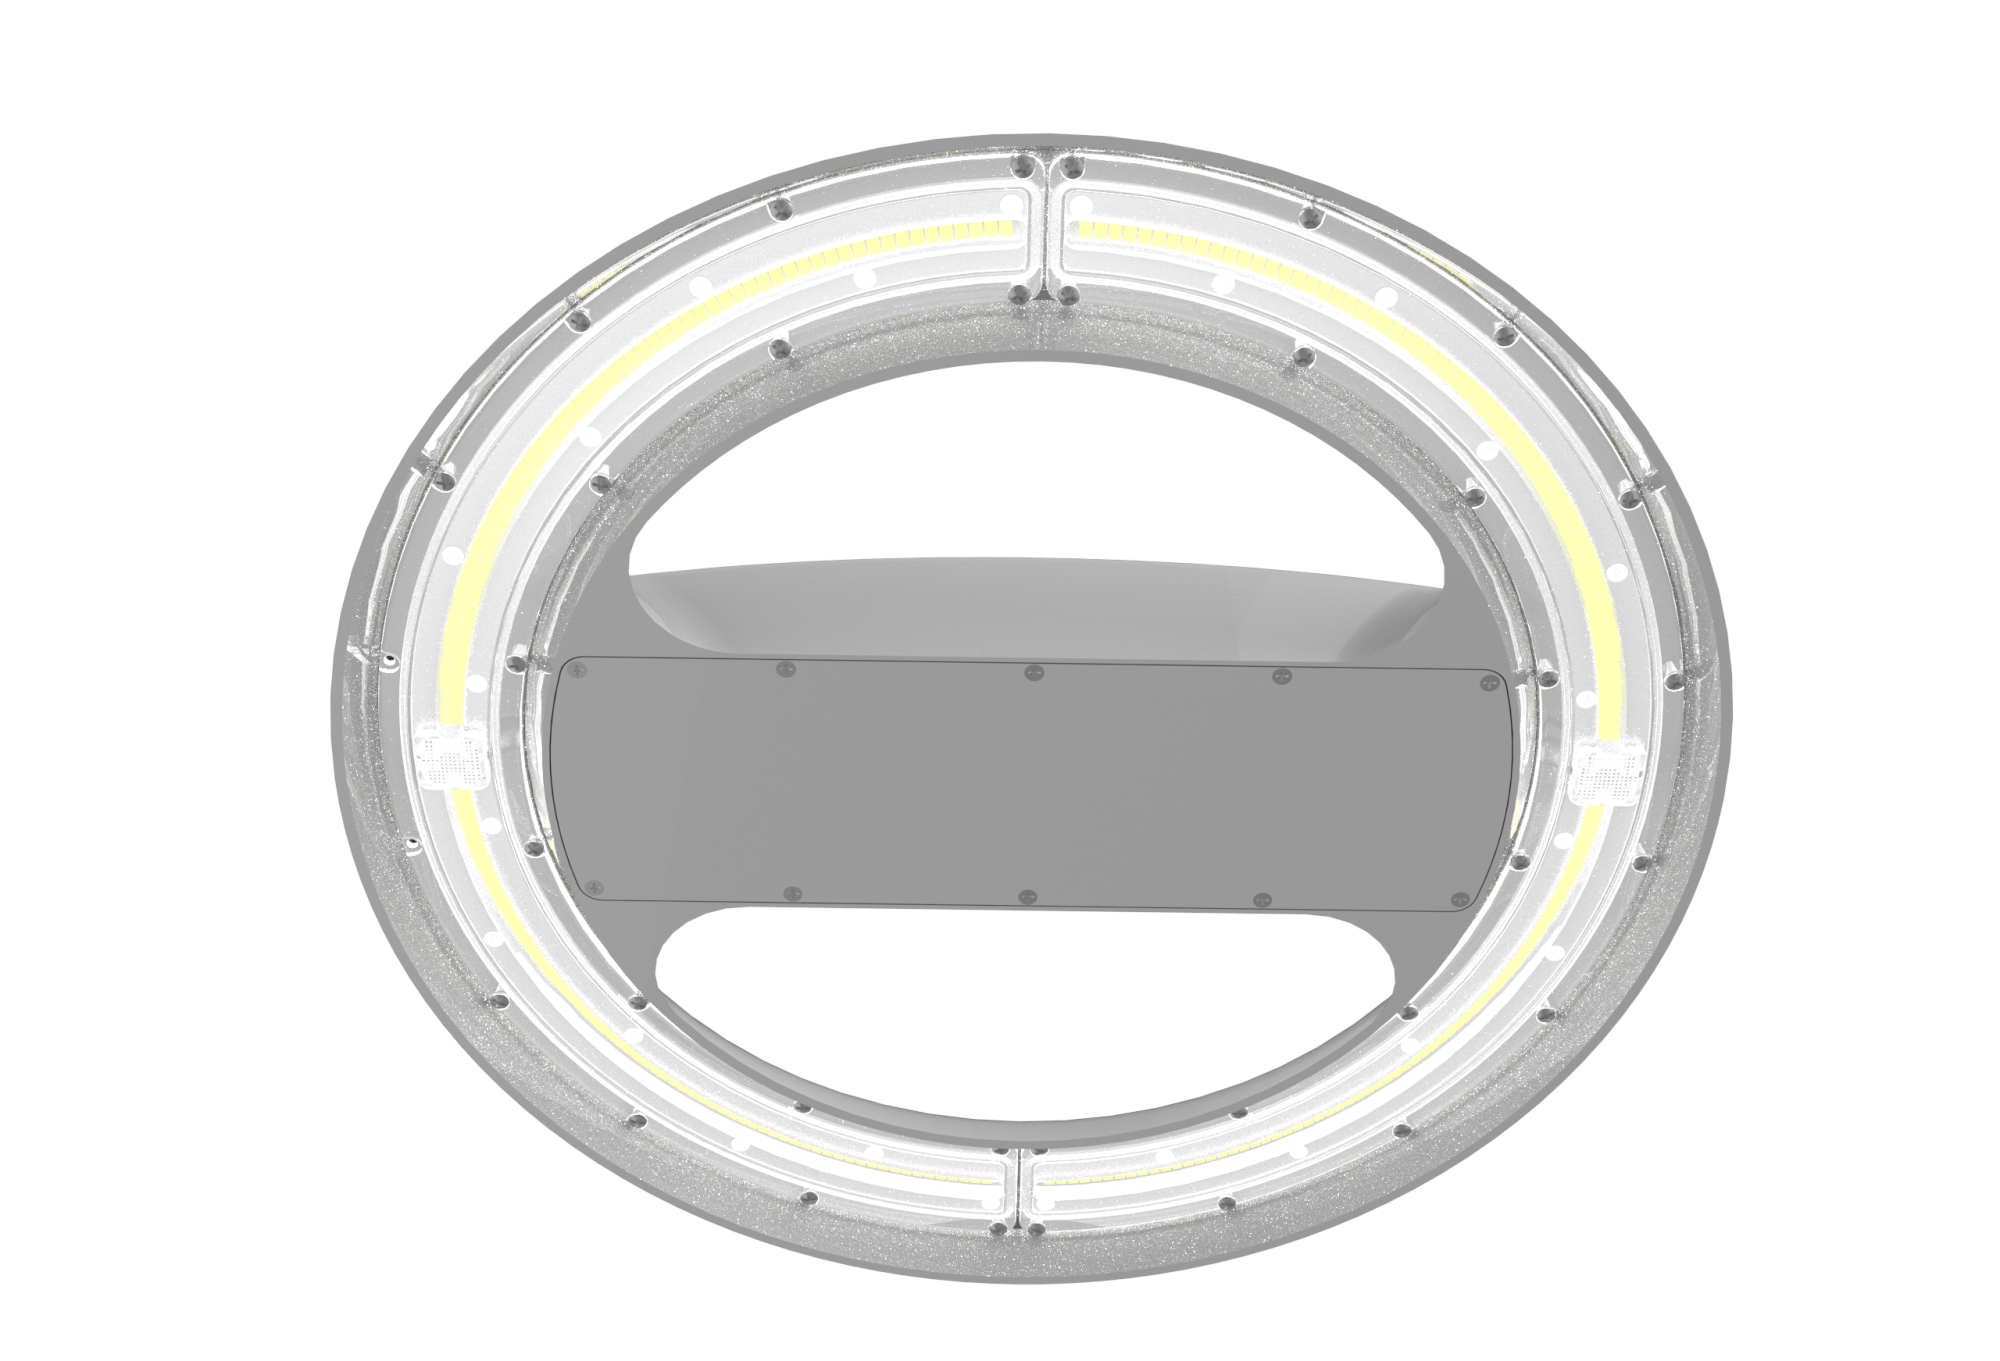 HALO LED HIGH BAY LIGHT